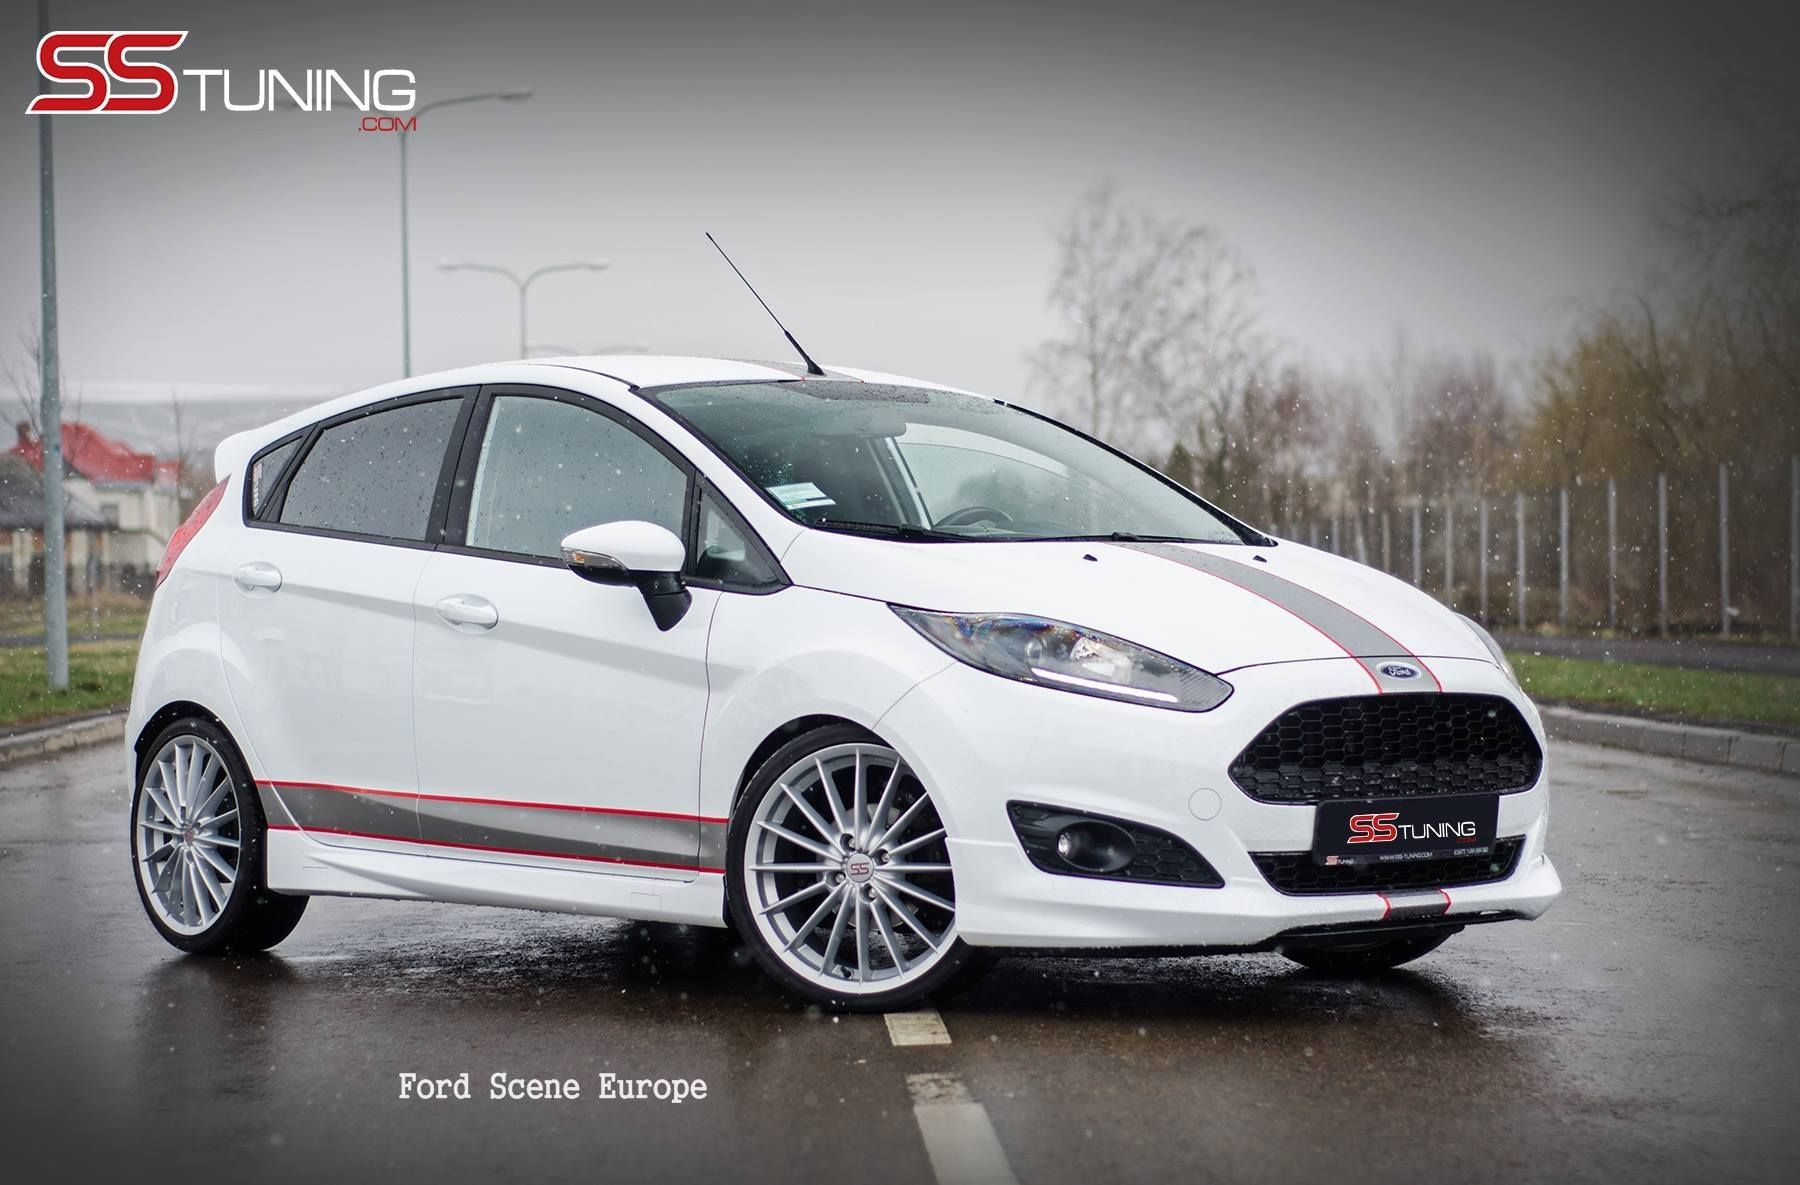 Ford Fiesta SS Tuning White Red And Black | All Ford ...